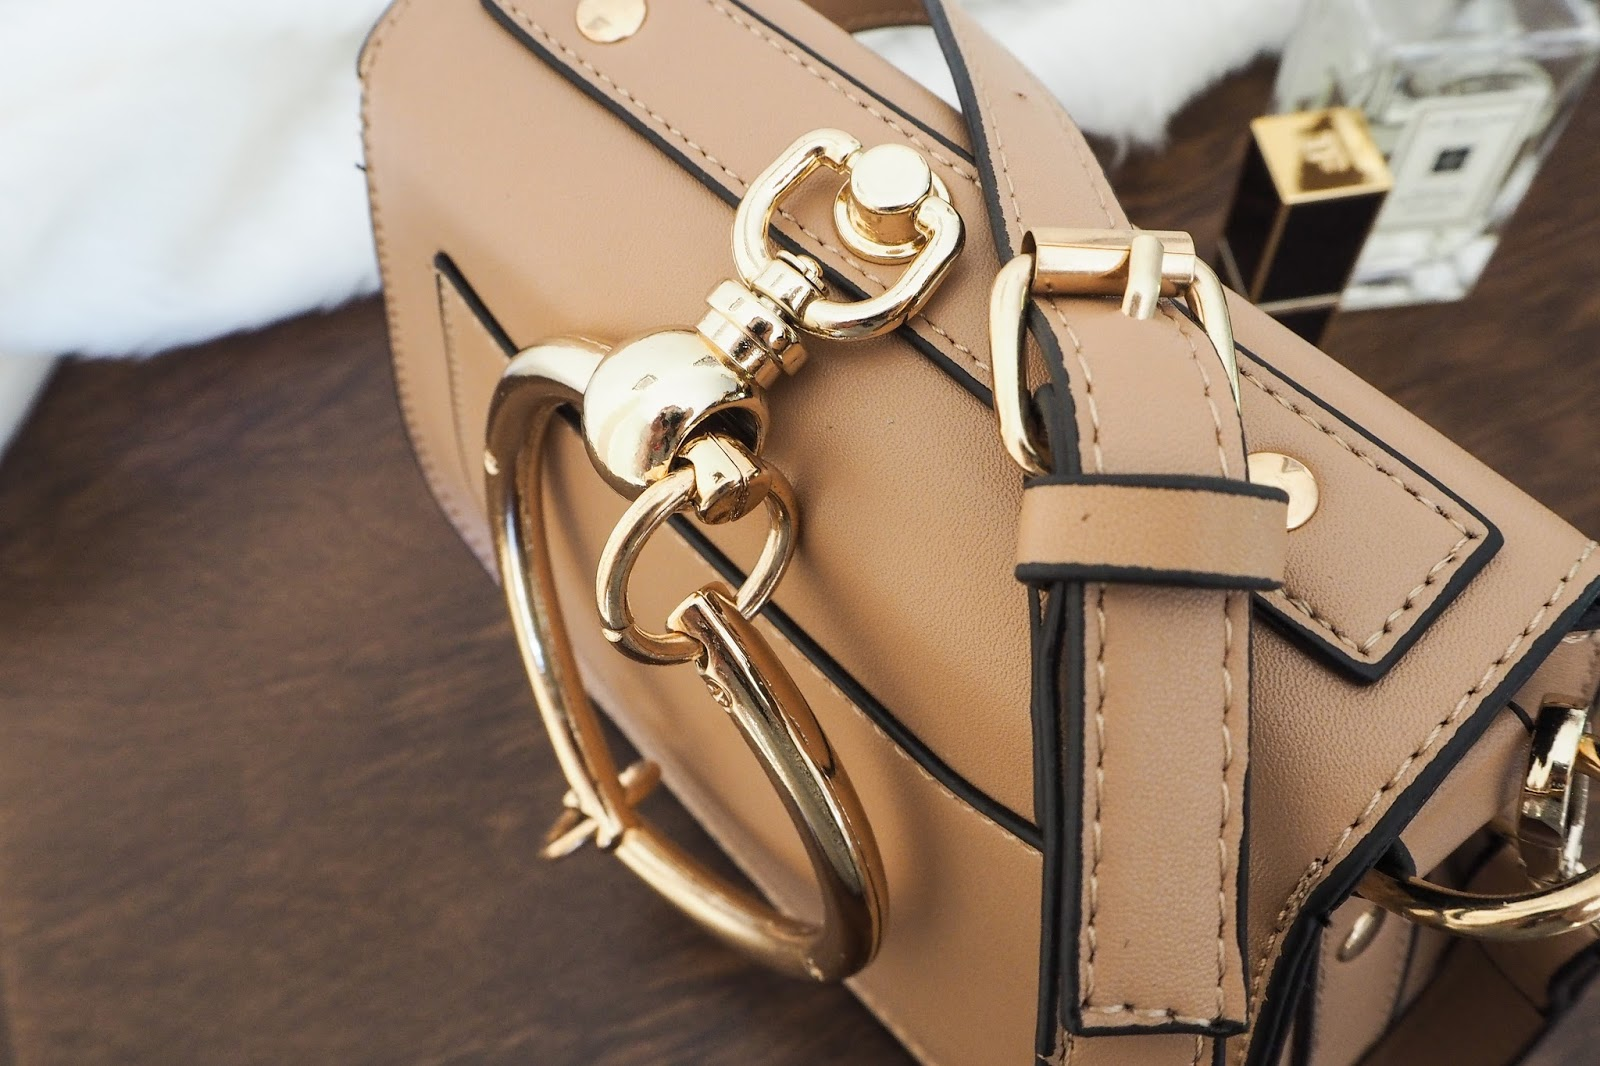 Strap details on the Chloe Nile dupe handbag